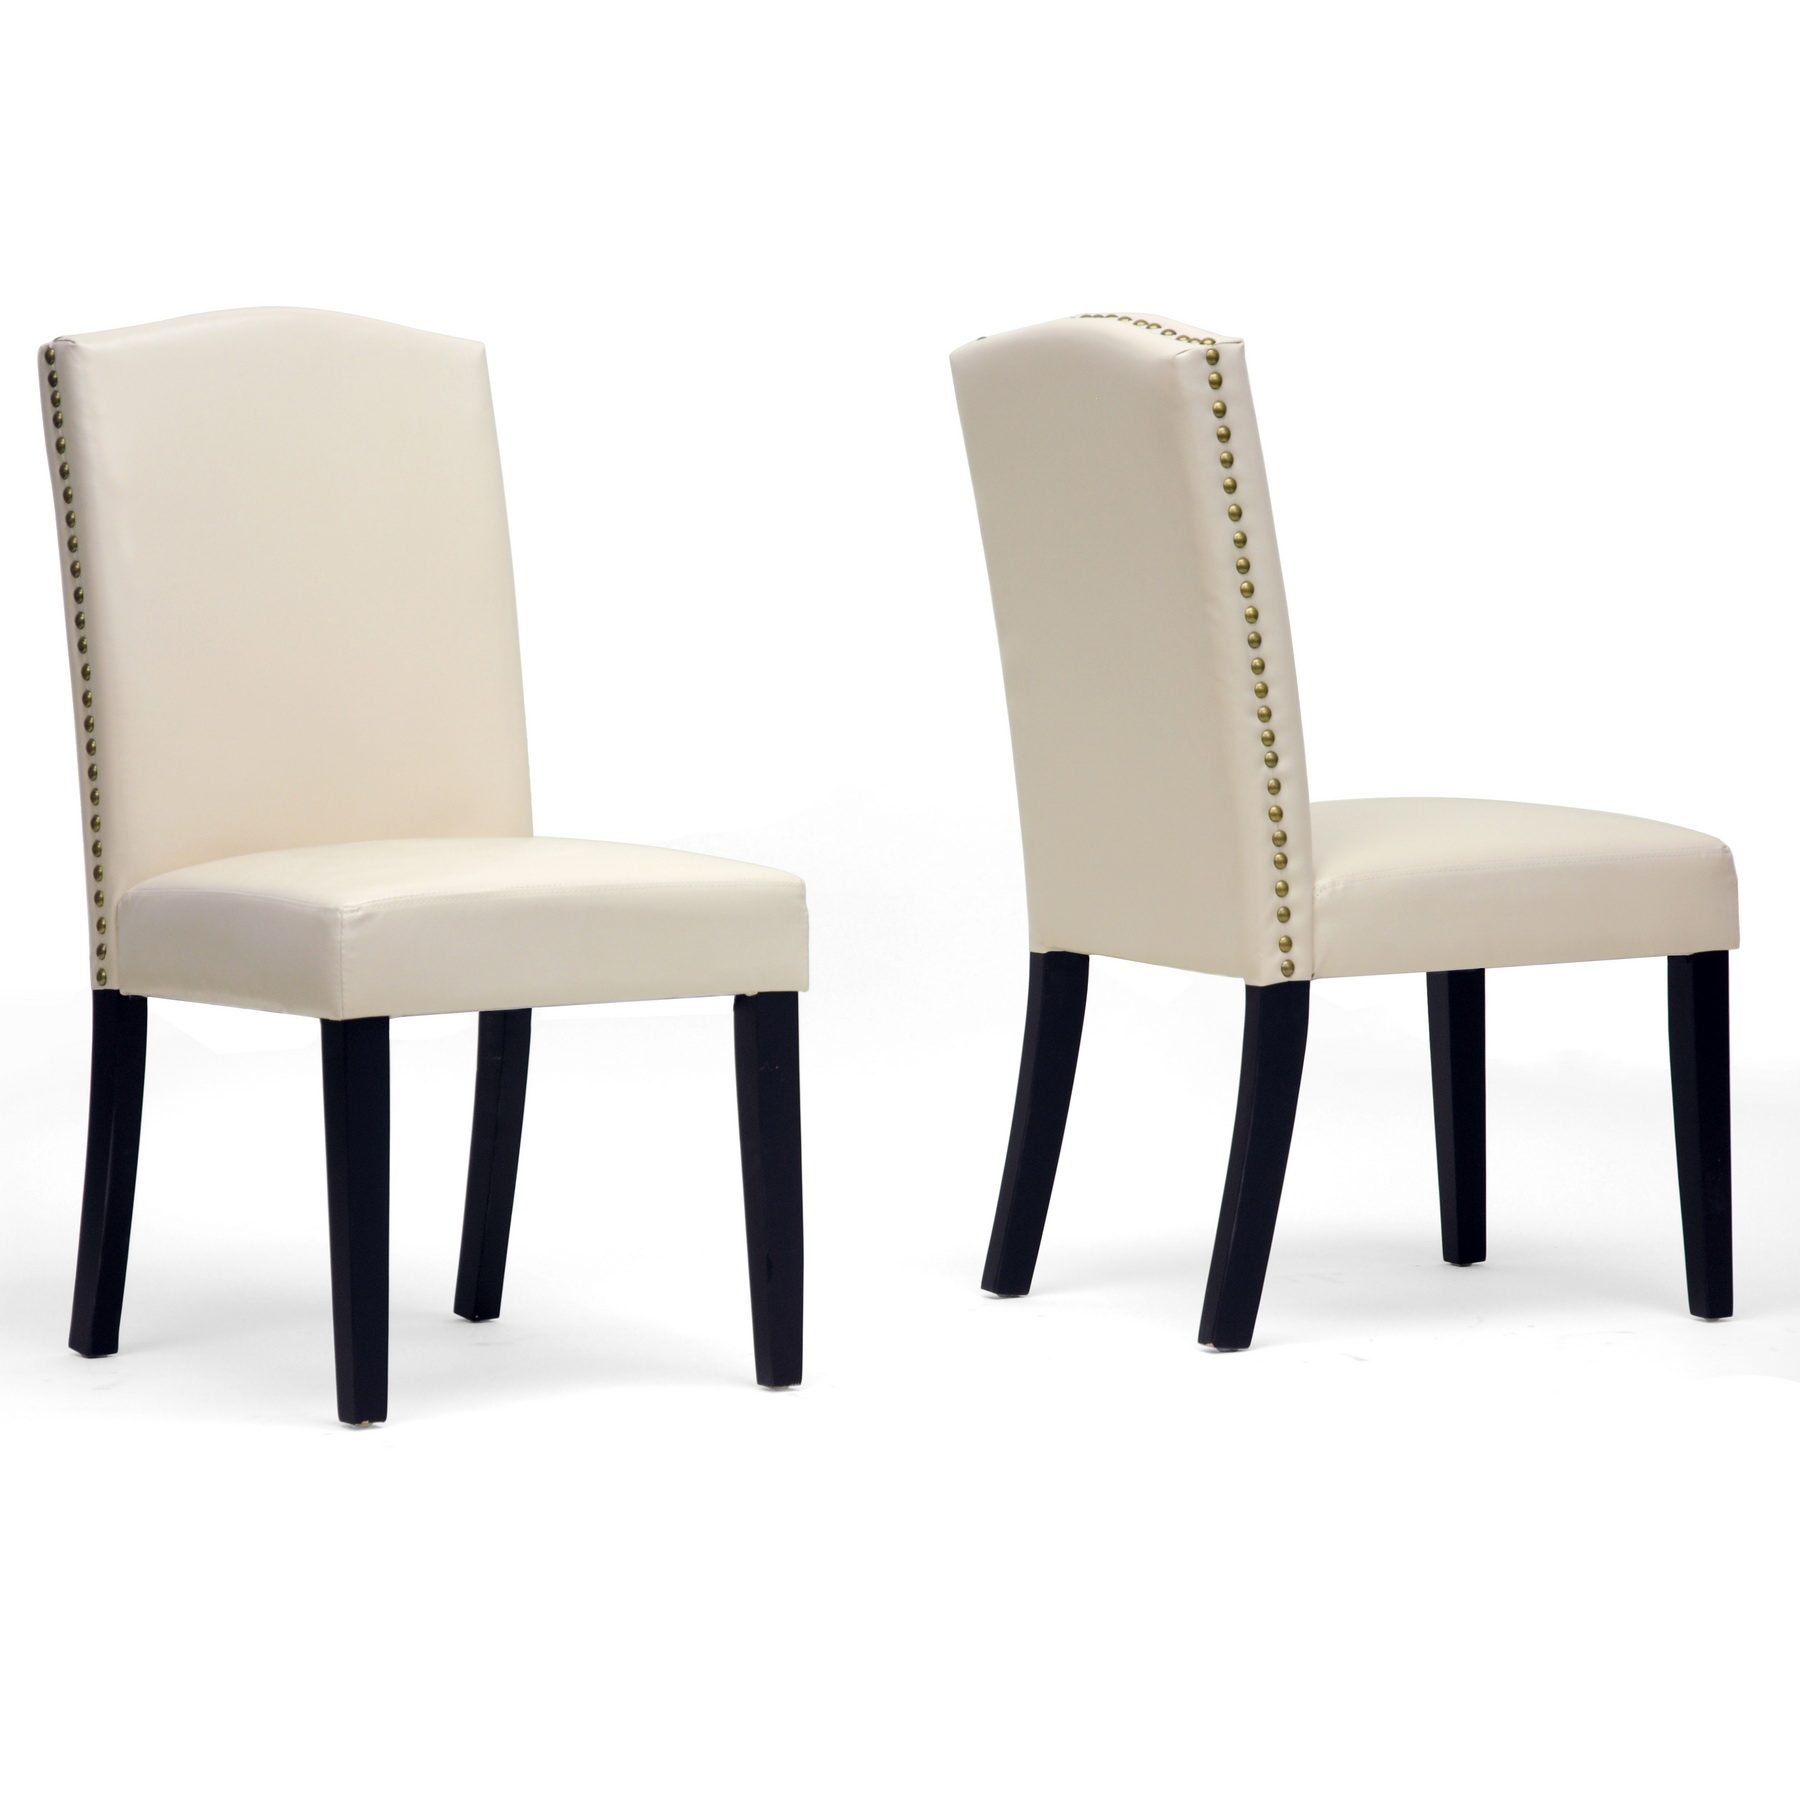 Modern White Dining Chair White Upholstered Dining Chair Displaying Infinite